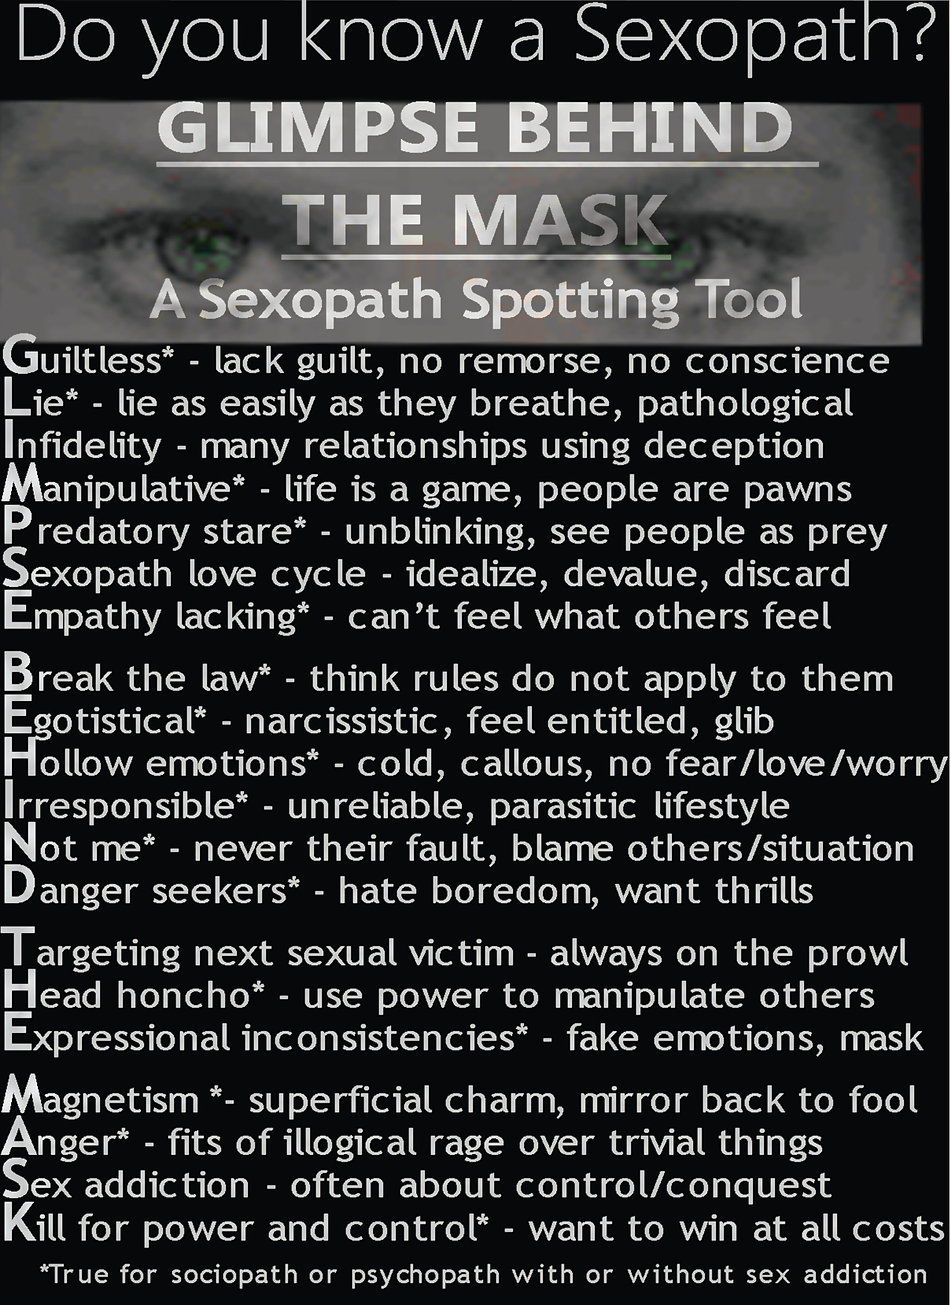 GLIMPSE BEHIND THE MASK no red box.jpg